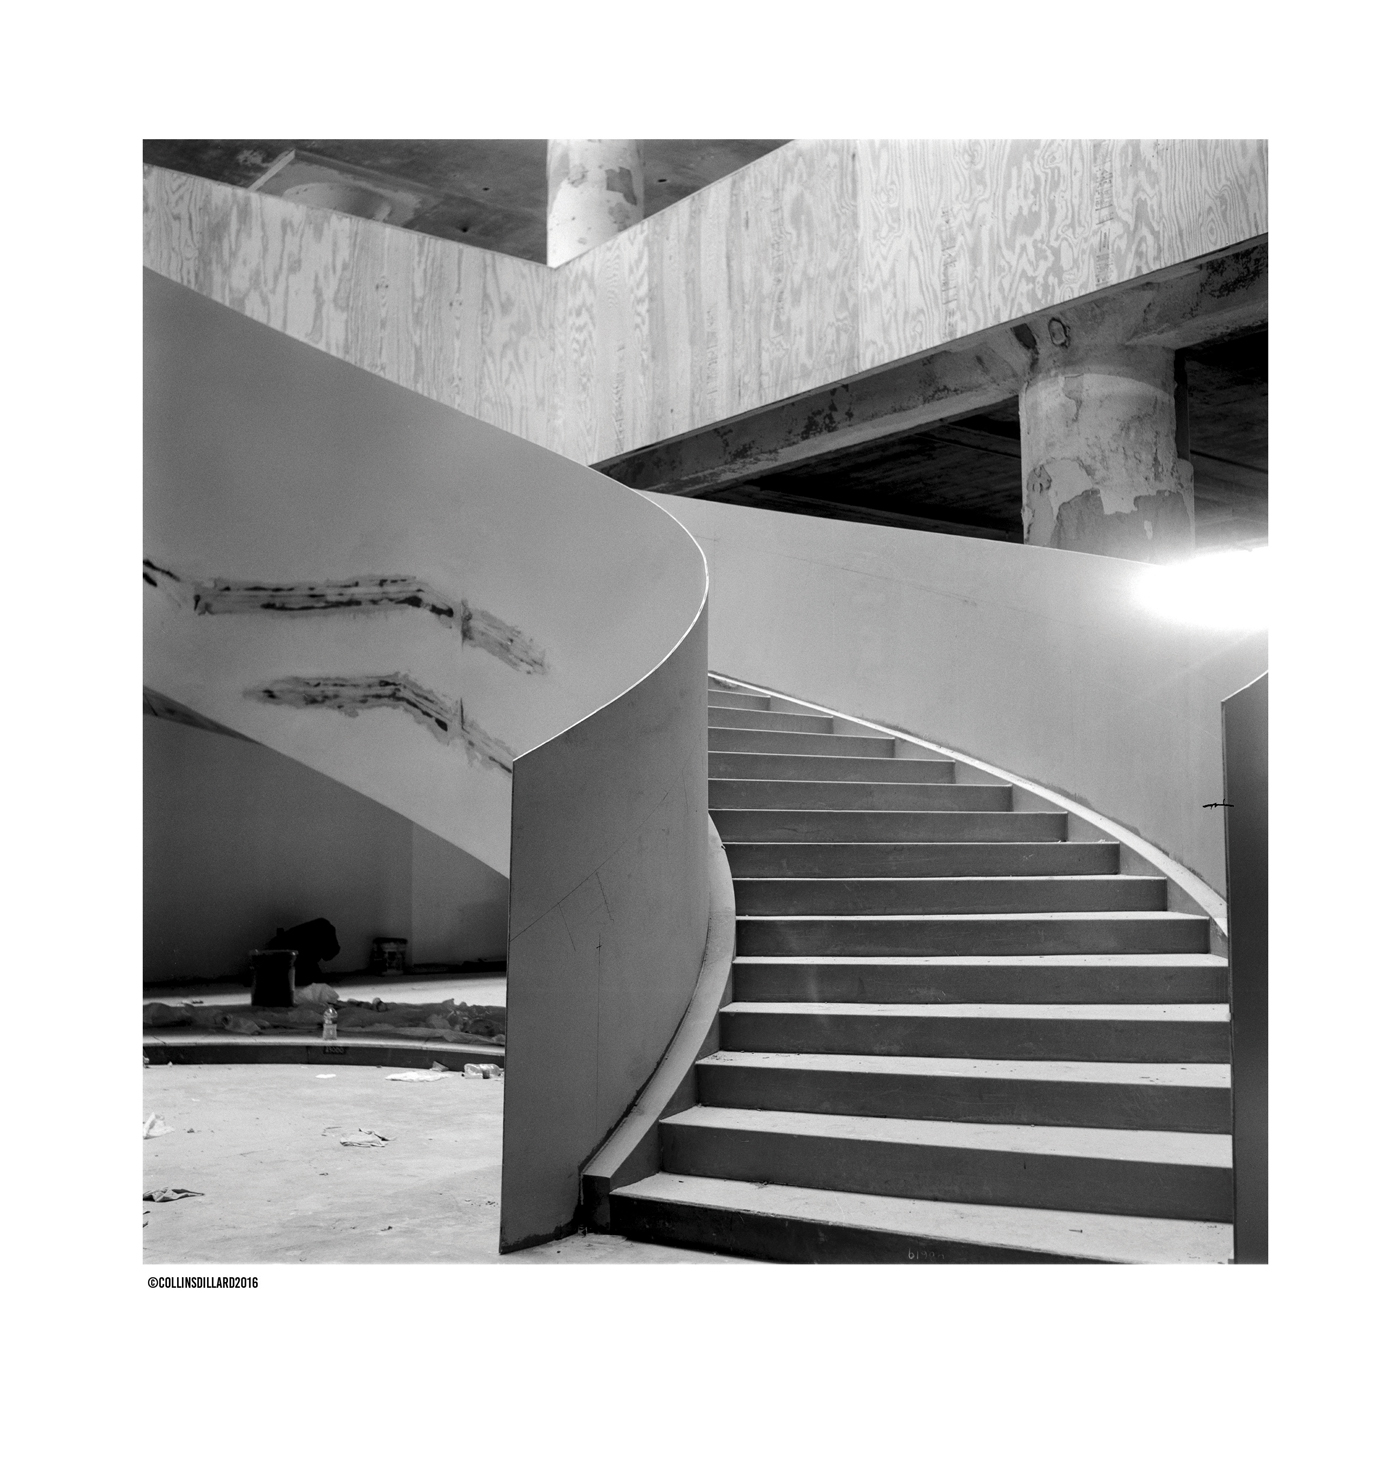 Spiral staircase: This winding set of stairs will lead you directly into the Crosstown Arts space.